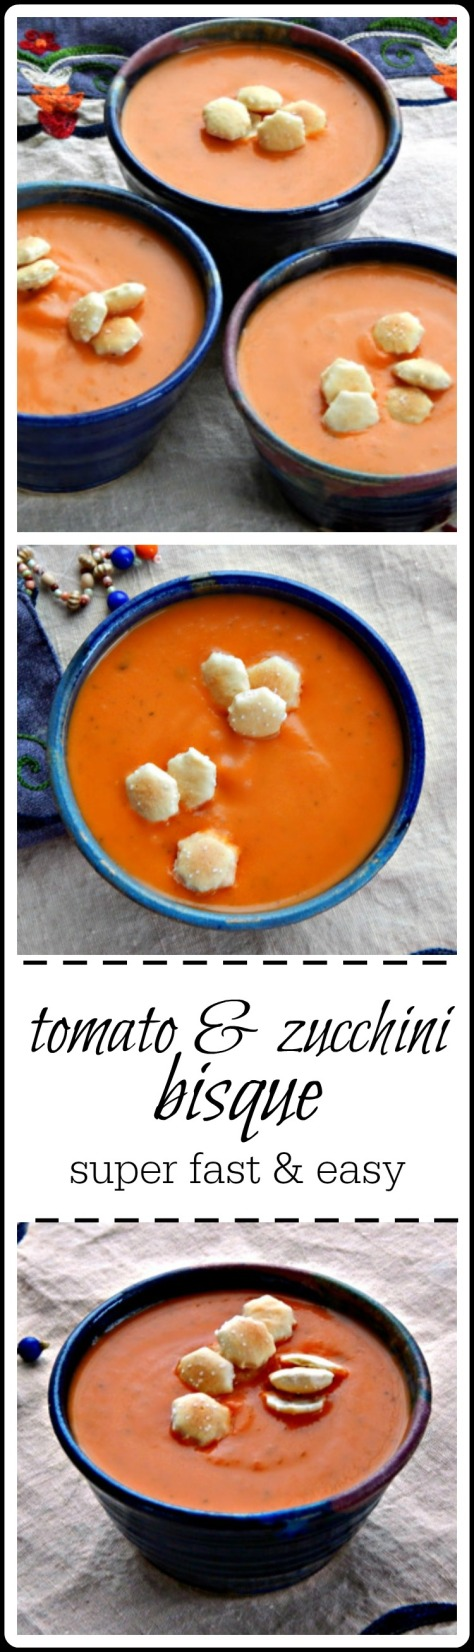 So good! You won't taste the zucchini, but it's in there, being all healthy! Excellent soup!